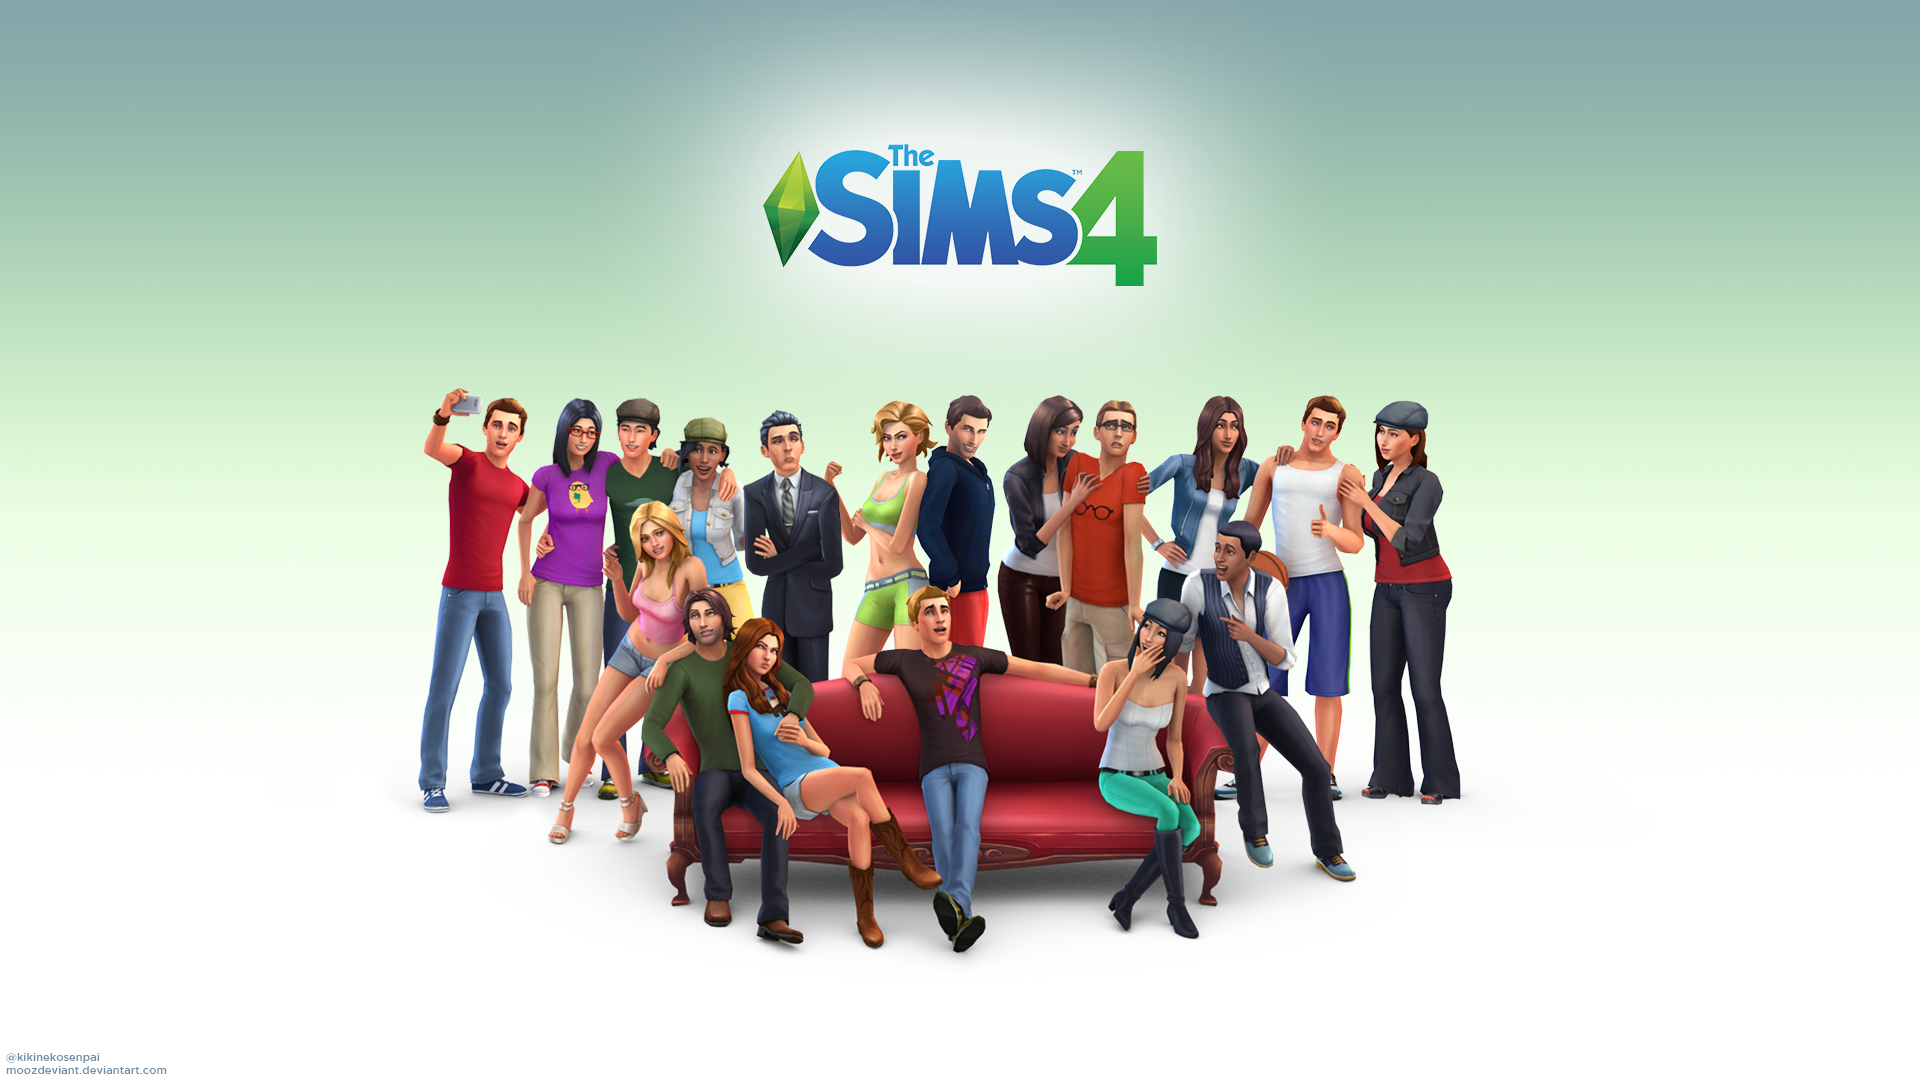 The Sims Wallpapers